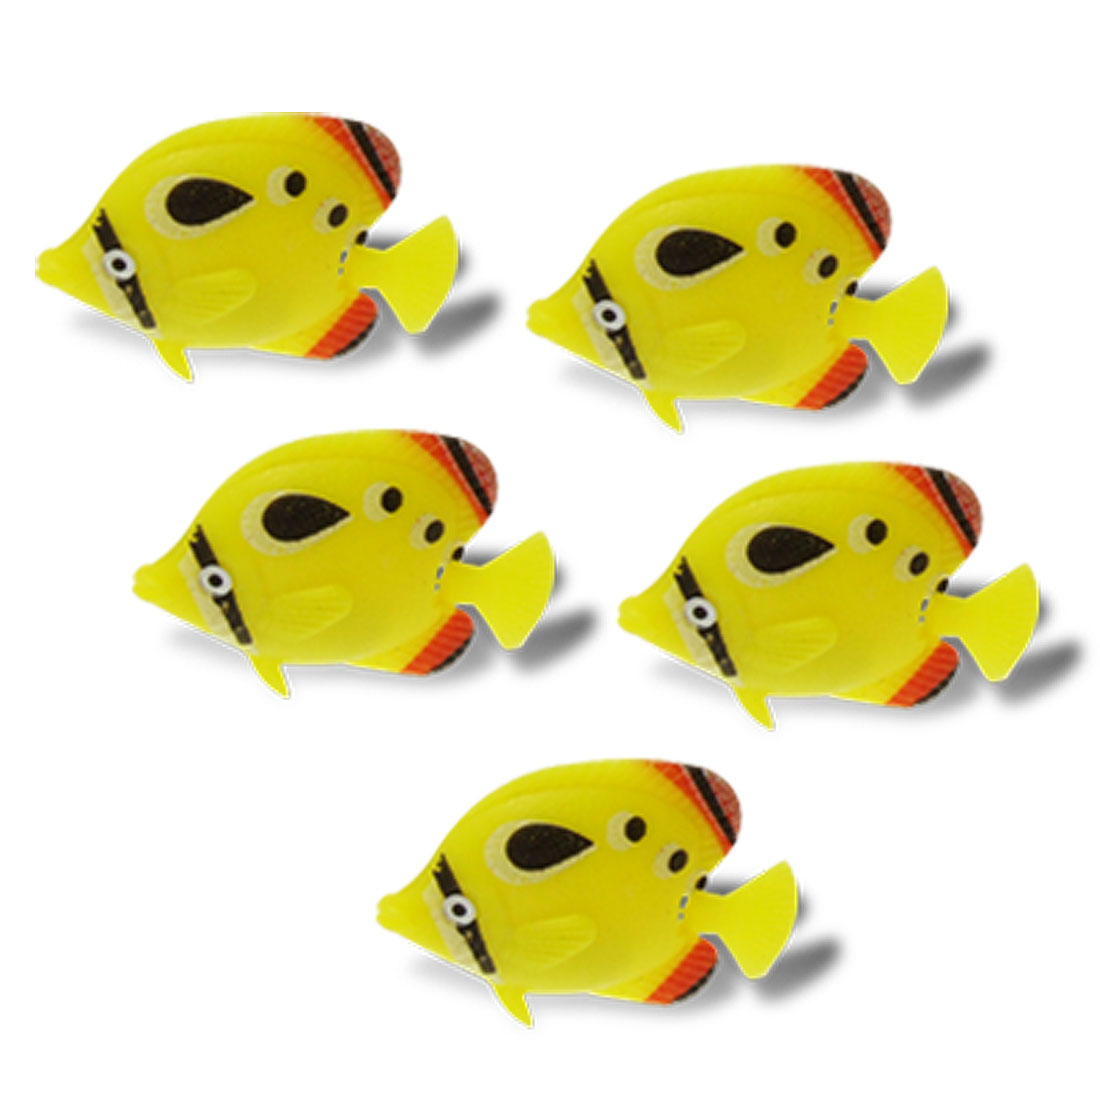 Fish Tank Fashion Aquarium Ornament Yellow Plastic Fish